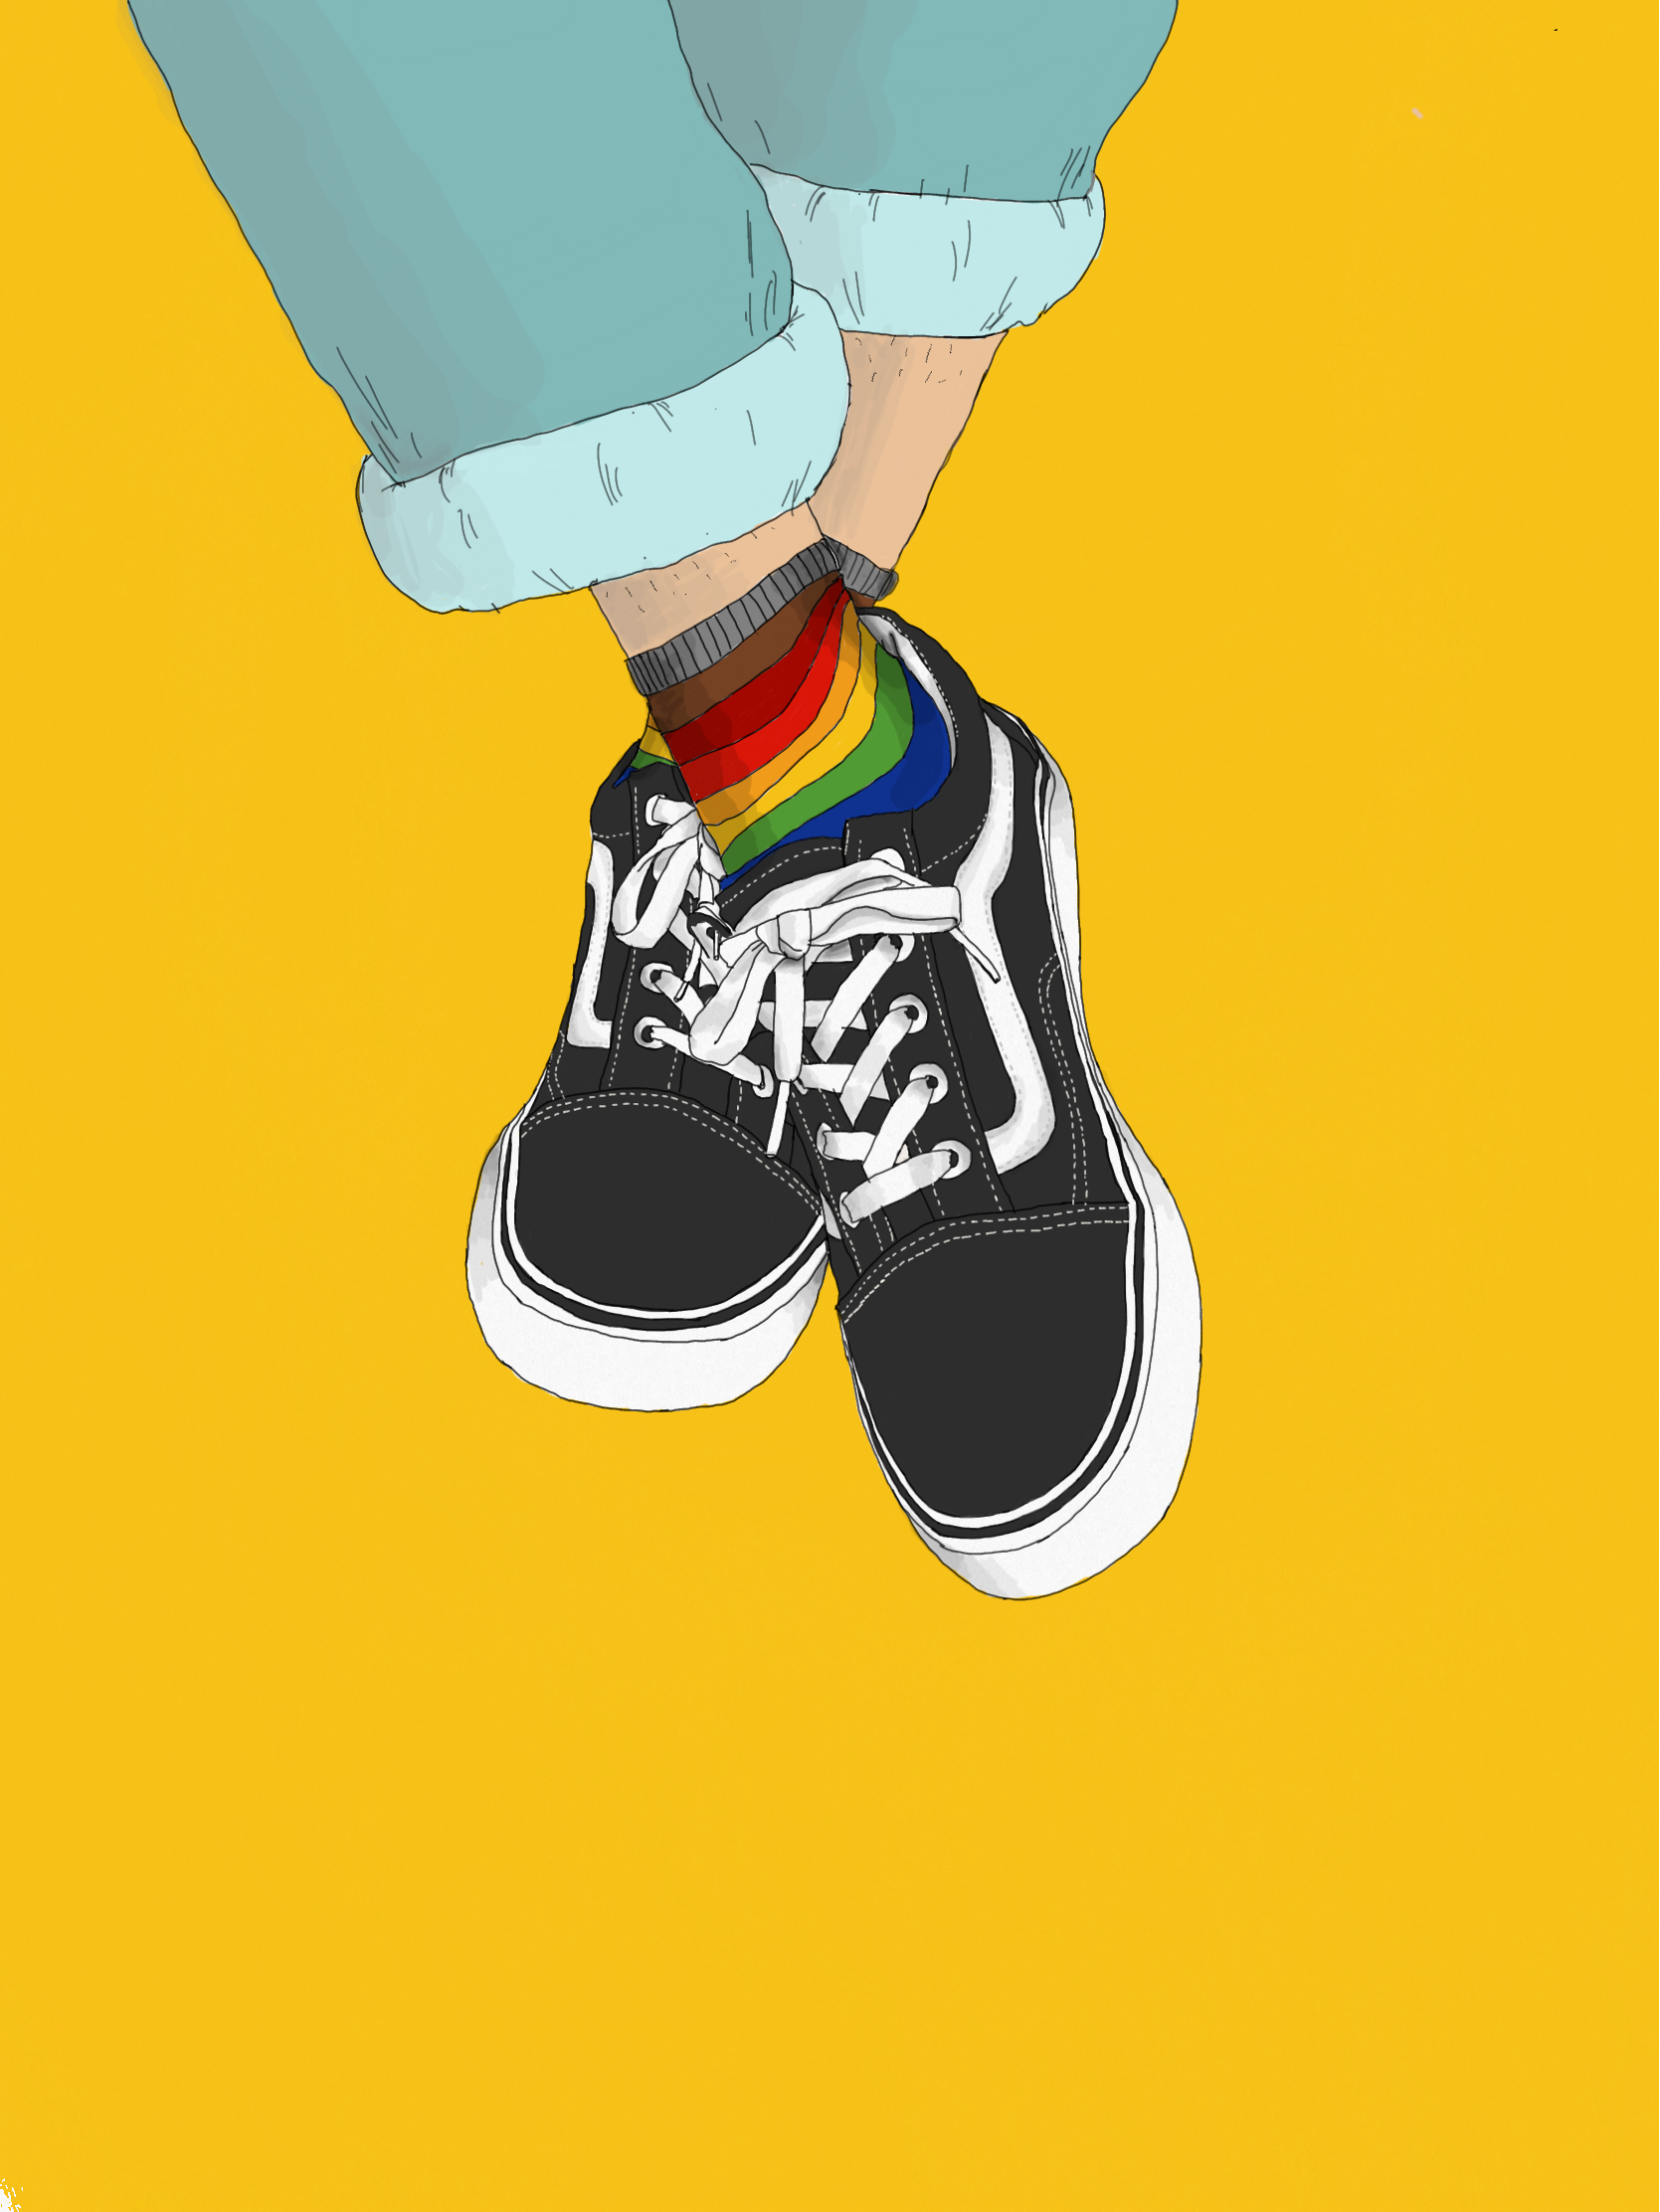 Get Latest Vans Background For Android Phone 2019 By Uploaded By User Iphone Wallpaper Vans Iphone Wallpaper Images Phone Wallpaper Design